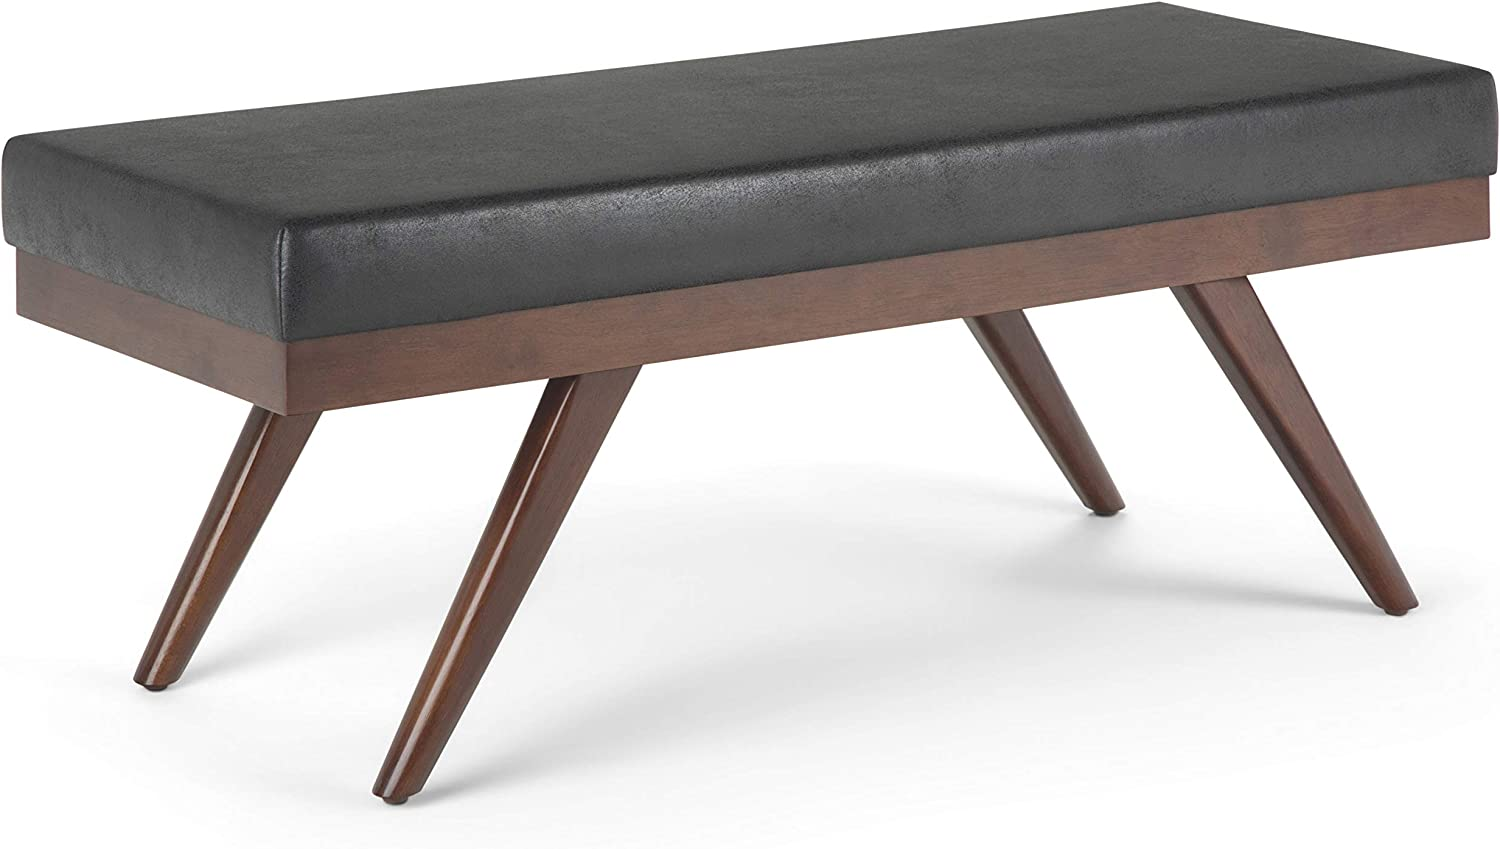 SIMPLIHOME Chanelle 48 inch Wide Rectangle Ottoman Bench Distressed Black Footrest Stool, Faux Leather for Living Room, Bedroom, Mid Century